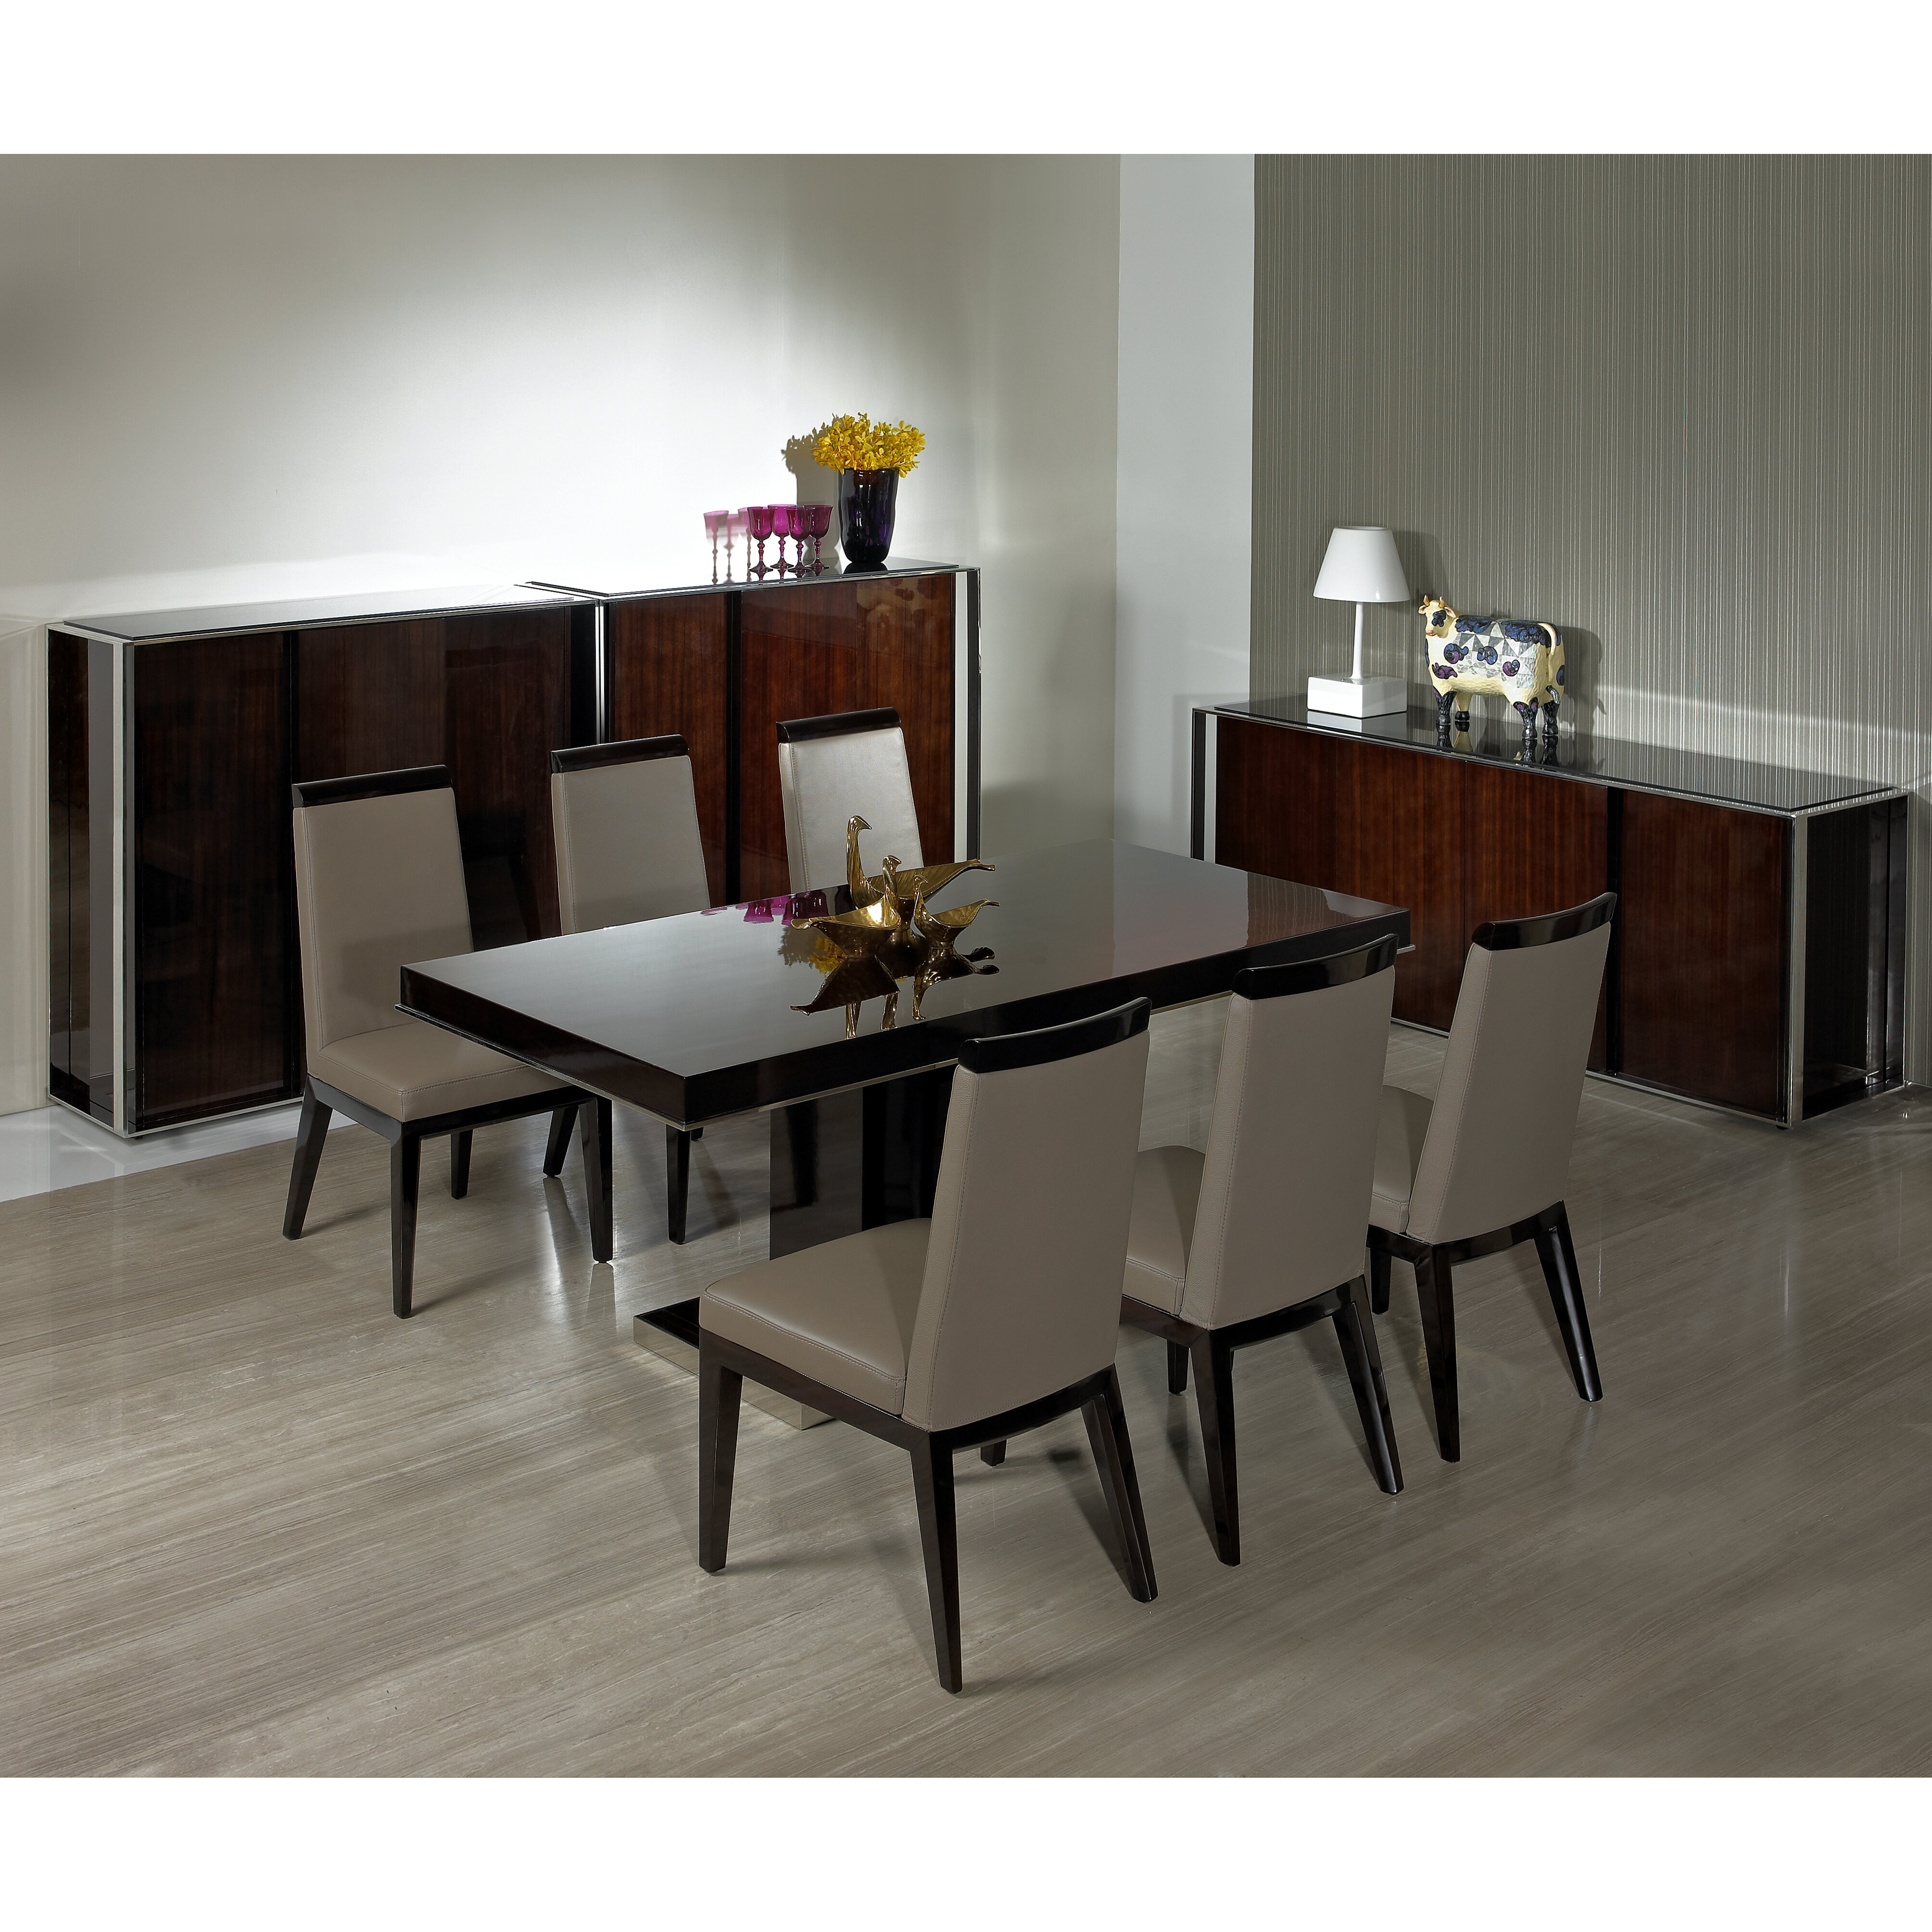 Vig furniture modrest noble dining table reviews wayfair